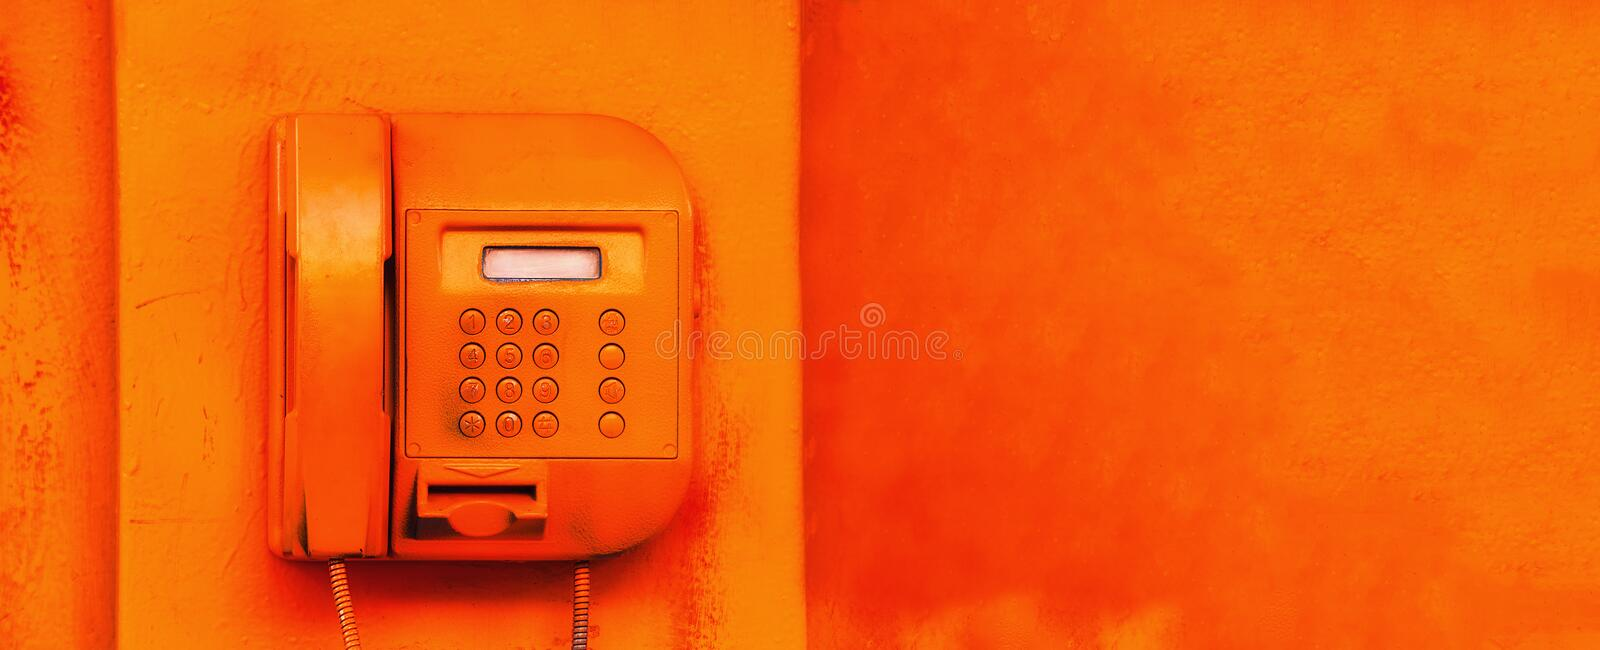 old street orange phone screen buttons royalty free stock photography